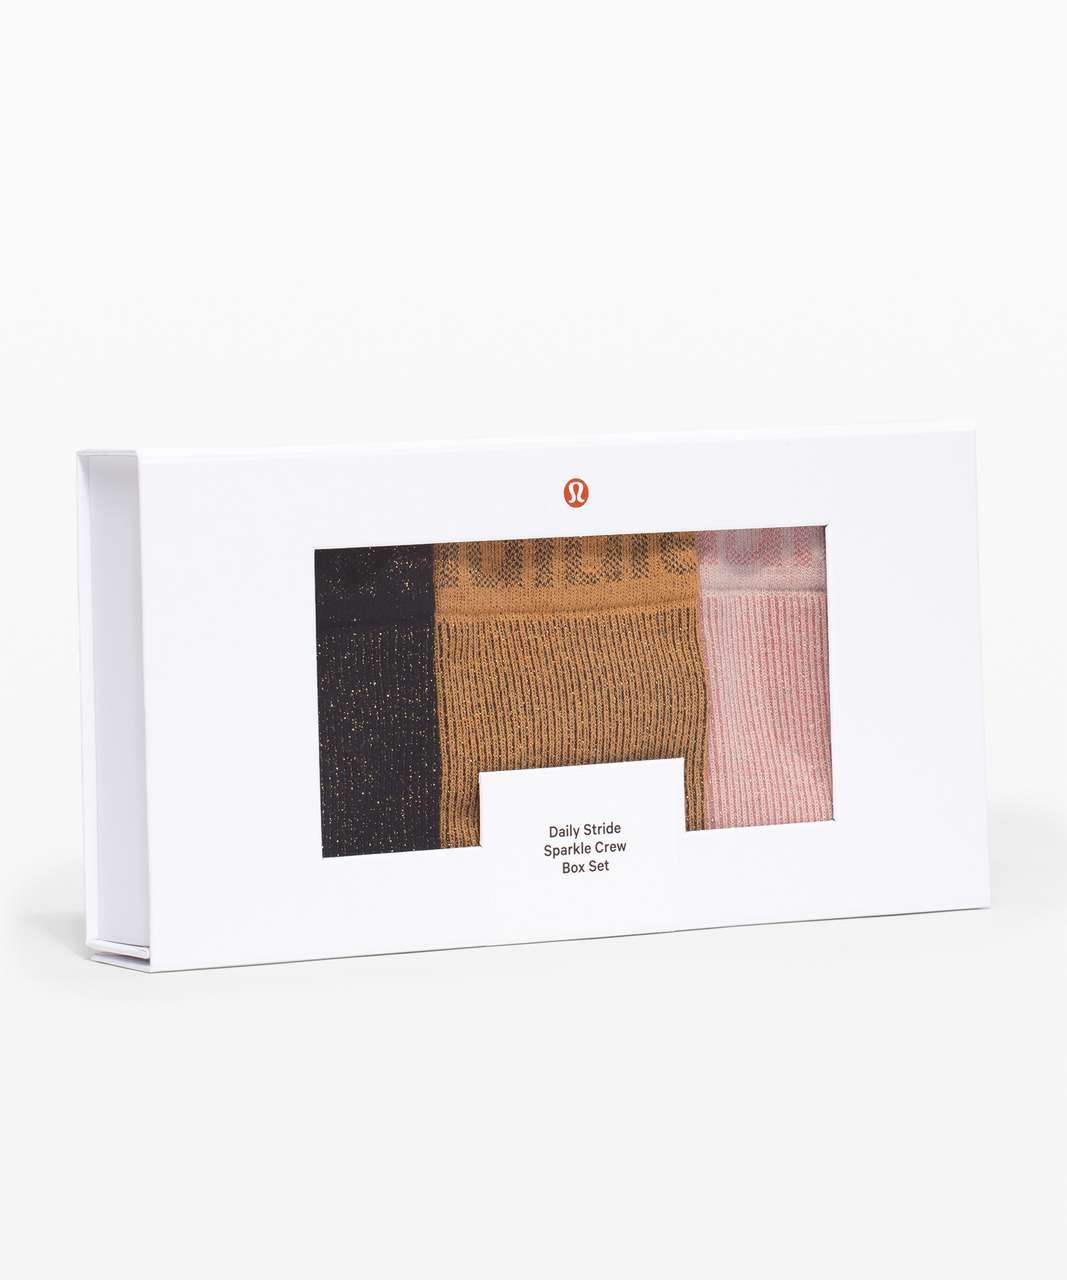 Lululemon Daily Stride Sparkle Crew *Boxed Set - Black / Gold Buff / Feather Pink